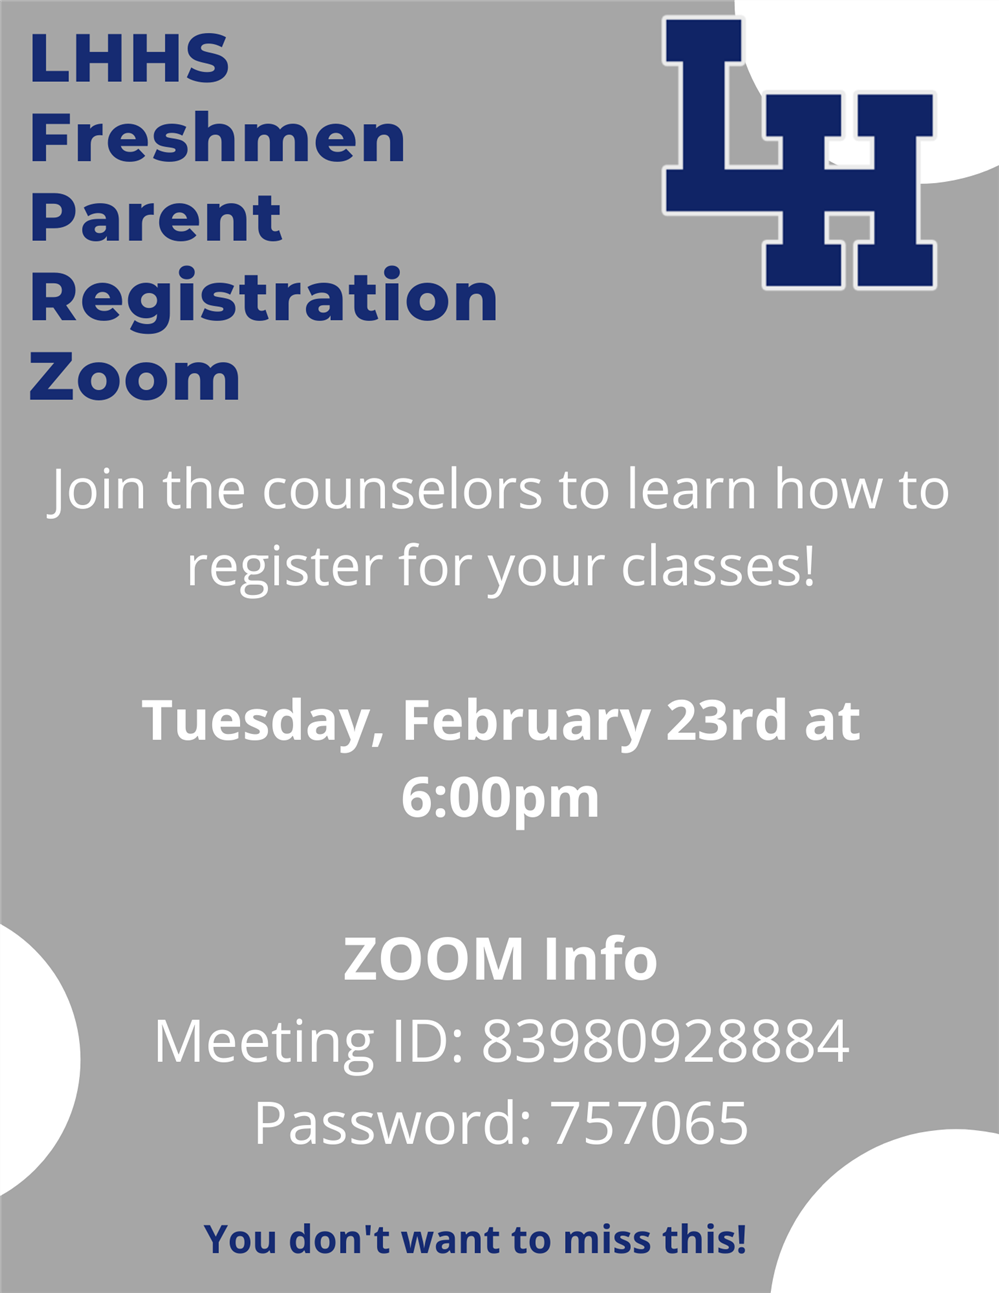 Incoming Freshmen Informational Zoom with LHHS Counselors